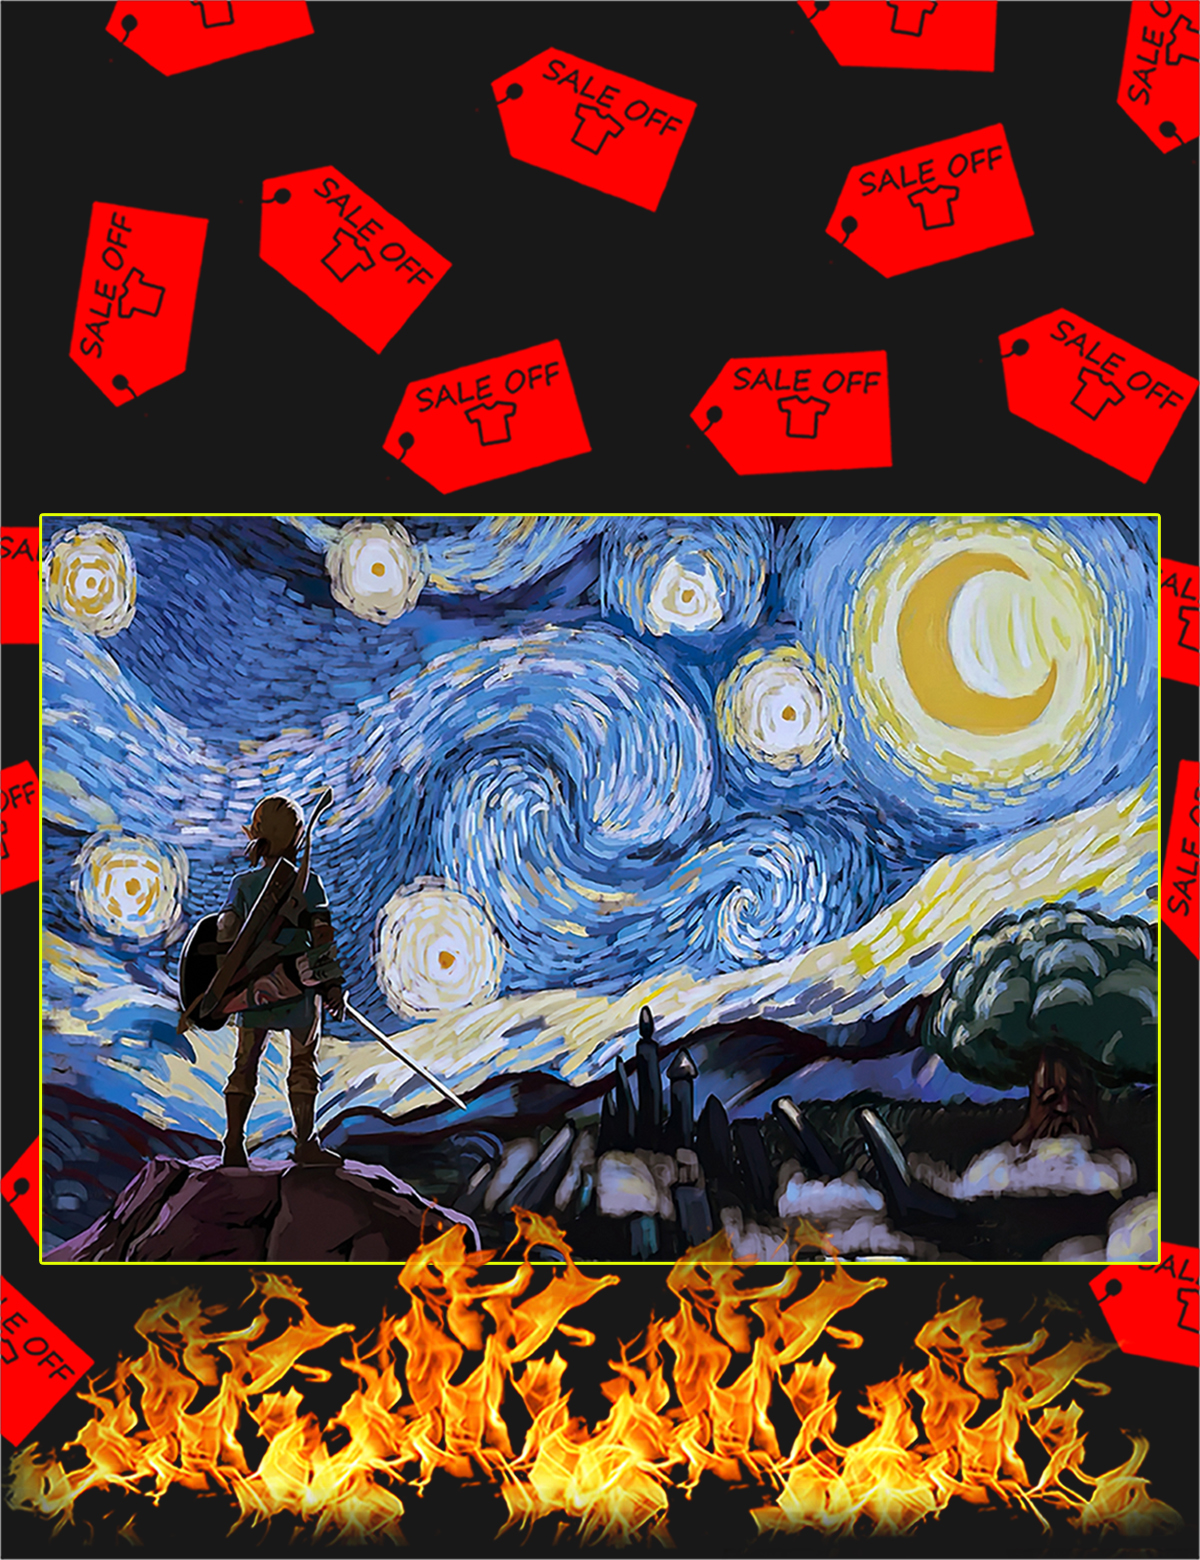 The legend of zelda starry night van gogh poster - A1